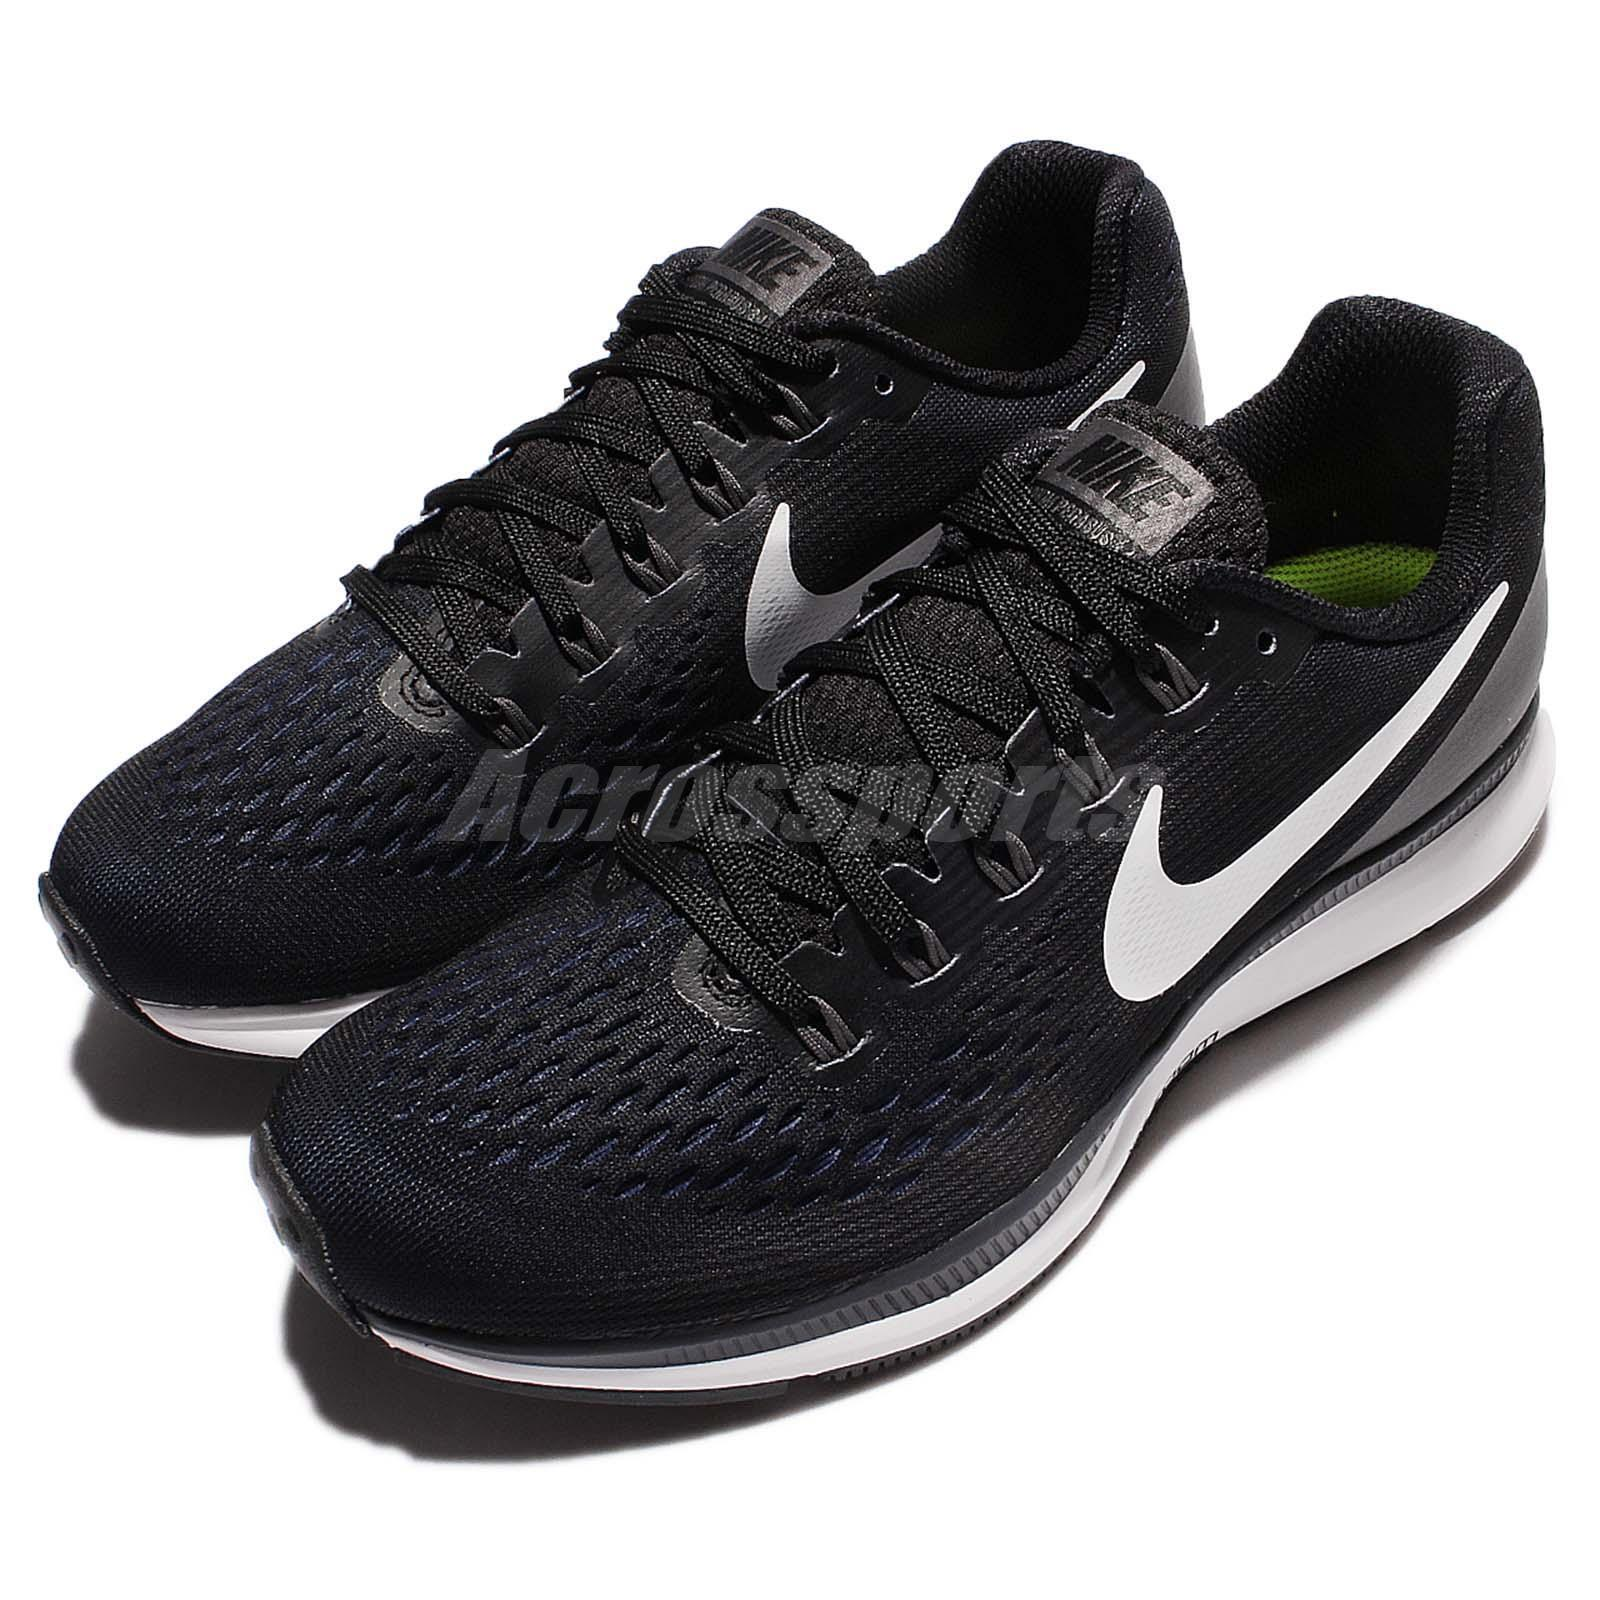 NIKE WOMENS AIR ZOOM PEGASUS 34 WIDE WIDTH ATHLETIC SHOES [880561 001]